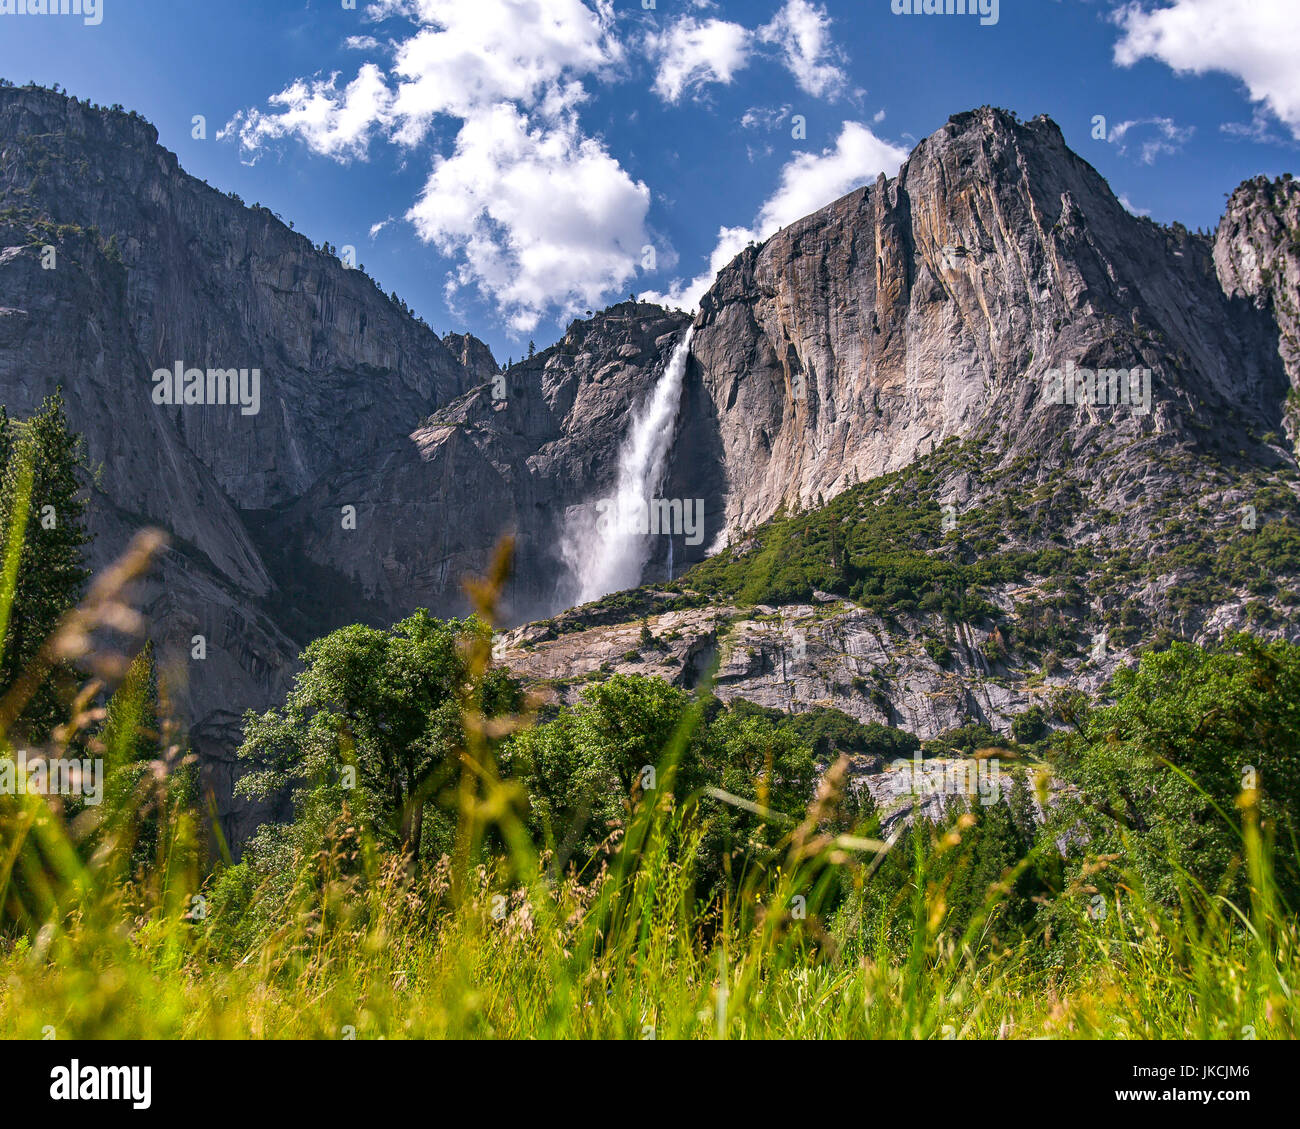 Tall grass is blurred in the foreground with the majestic view of Yosemite Falls in the background - Stock Image